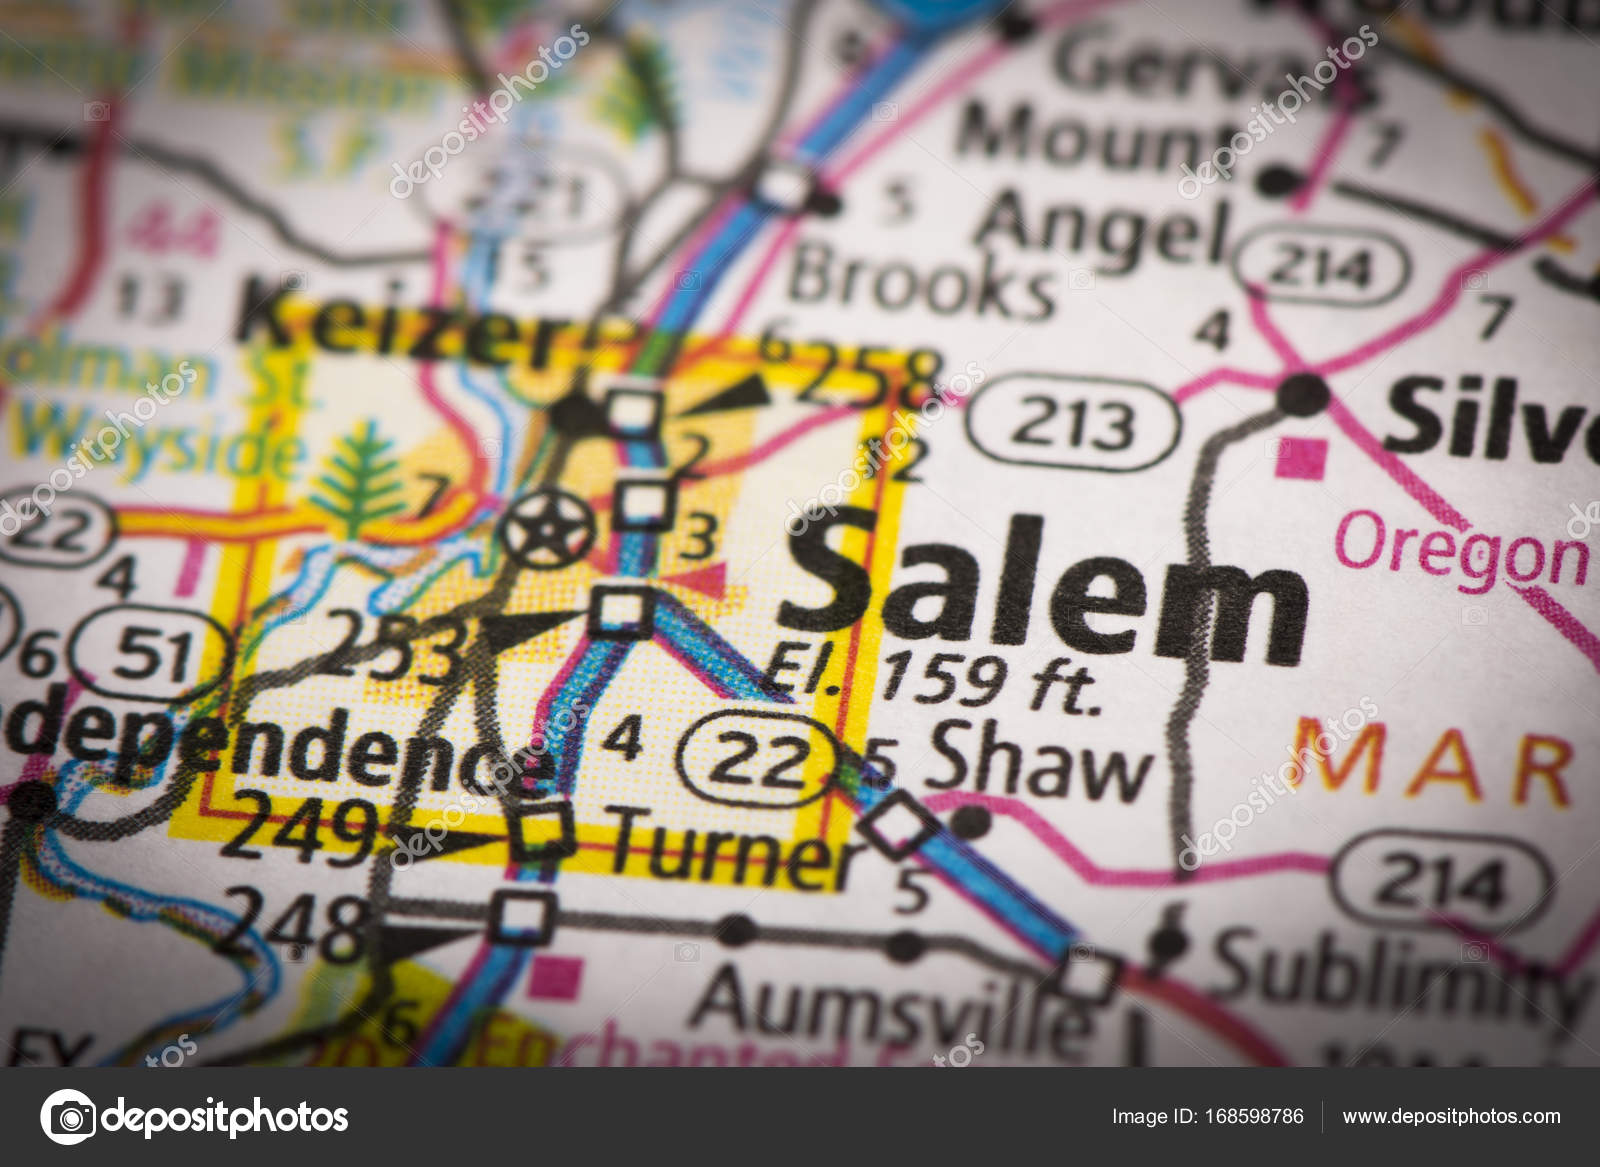 Salem, Oregon on map — Stock Photo © icemanj #168598786